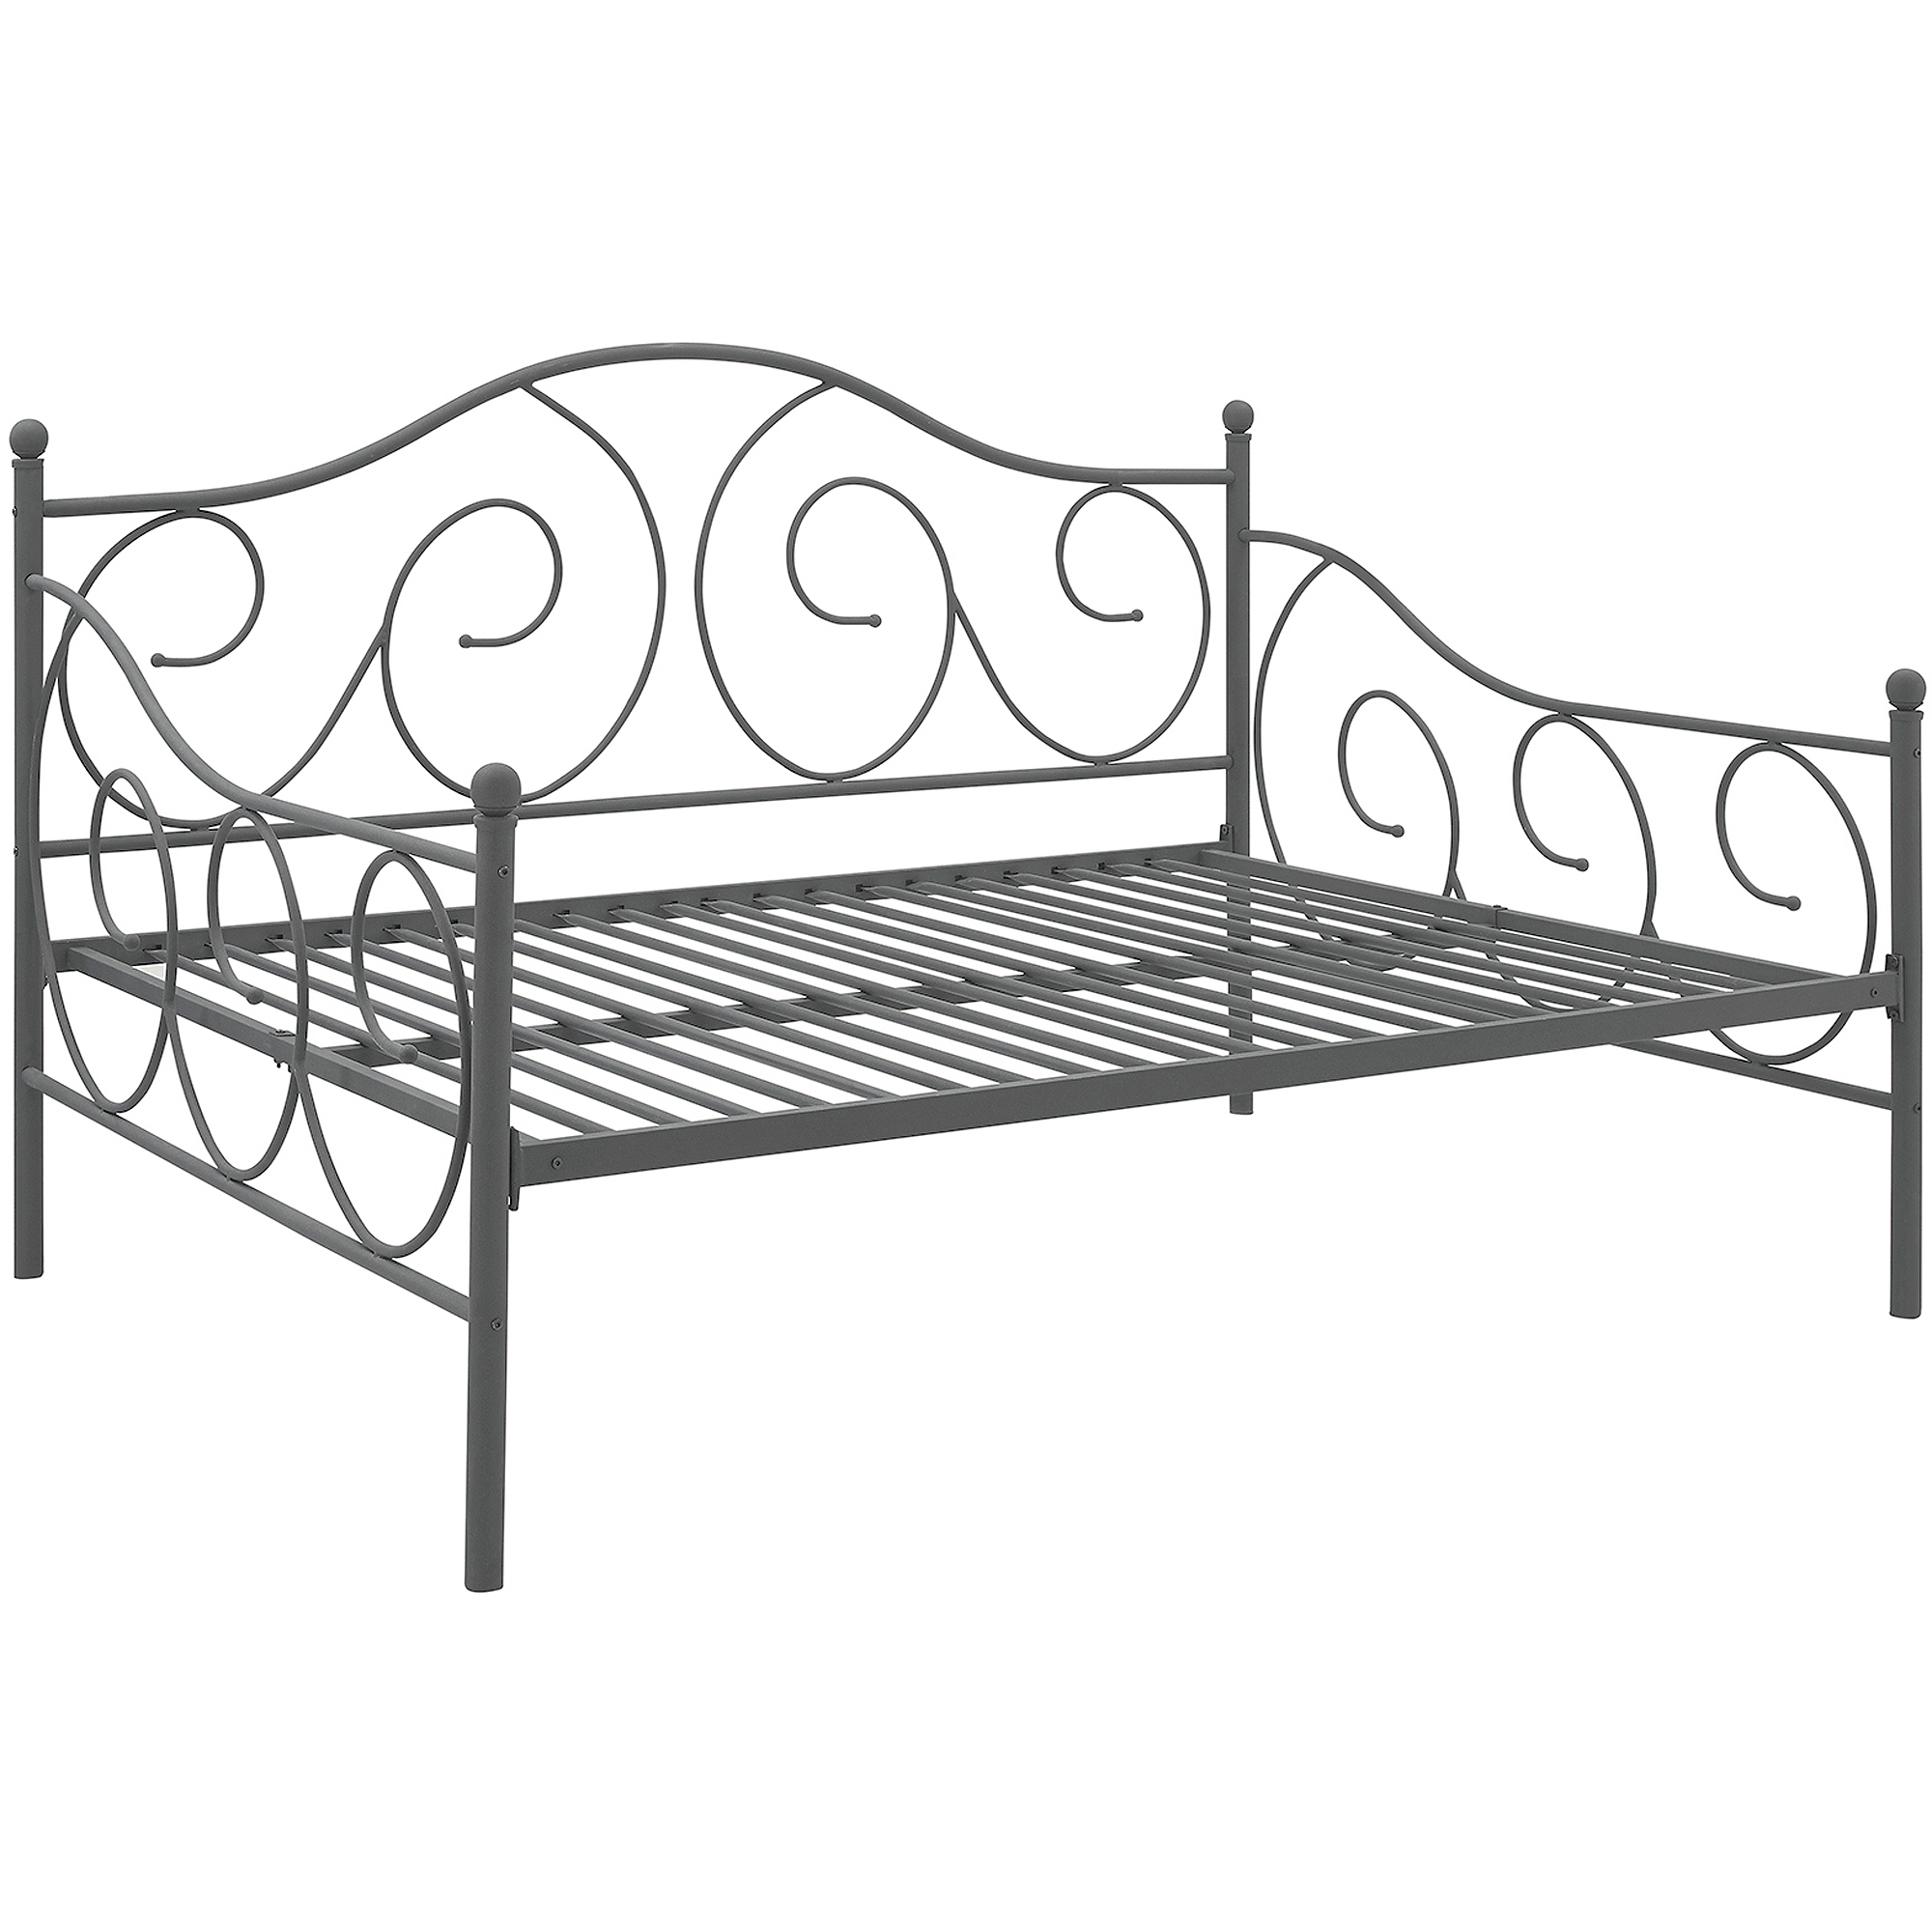 Picture 4 of 8. DHP Victoria Full Size Metal Daybed Pewter  4022939 Bed   eBay